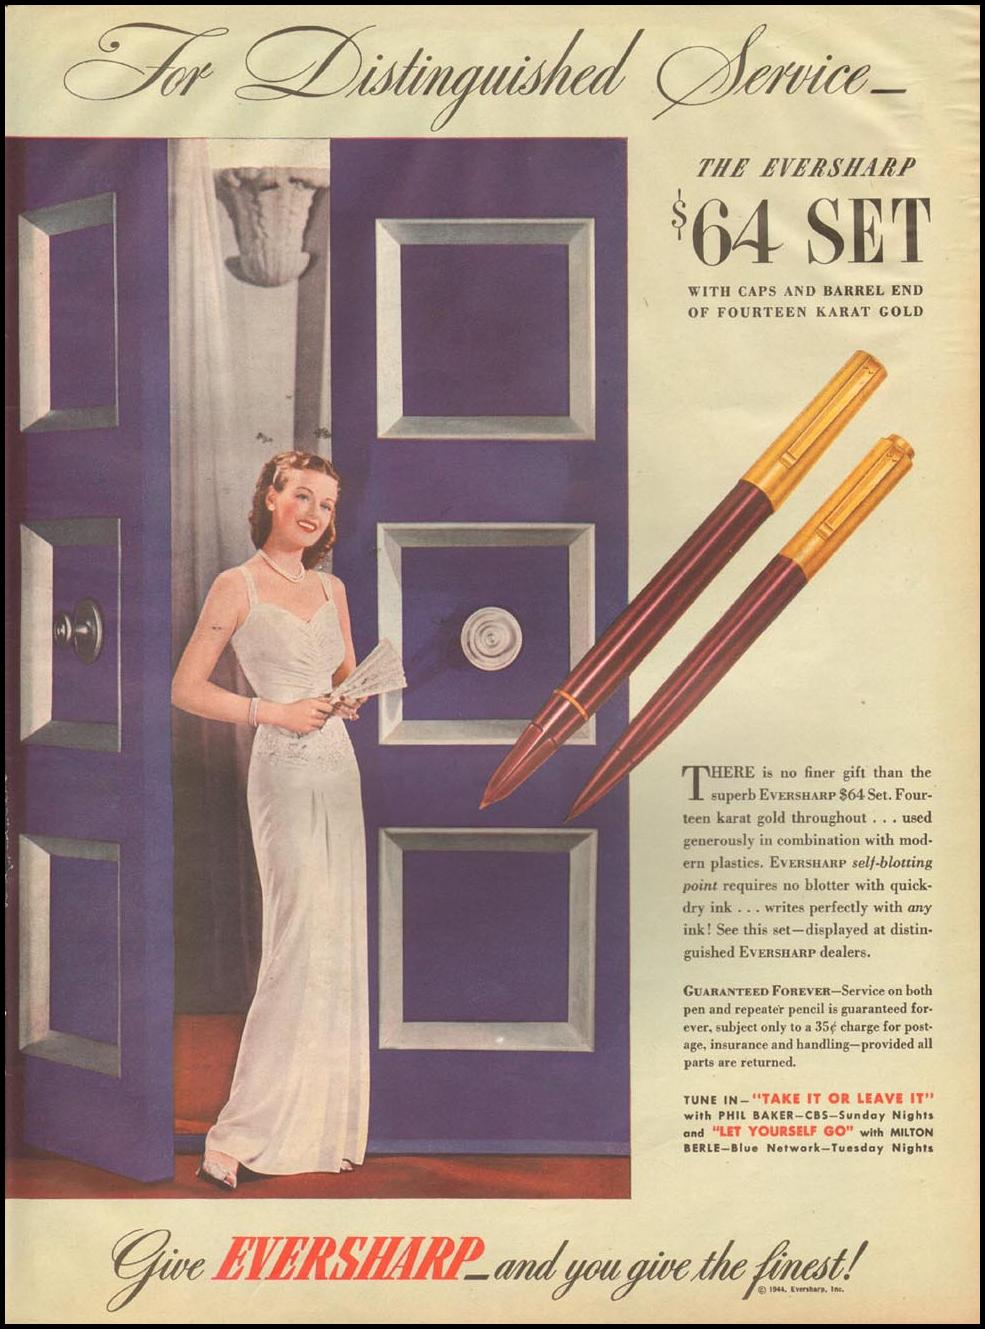 EVERSHARP PEN & PENCIL SETS LIFE 10/23/1944